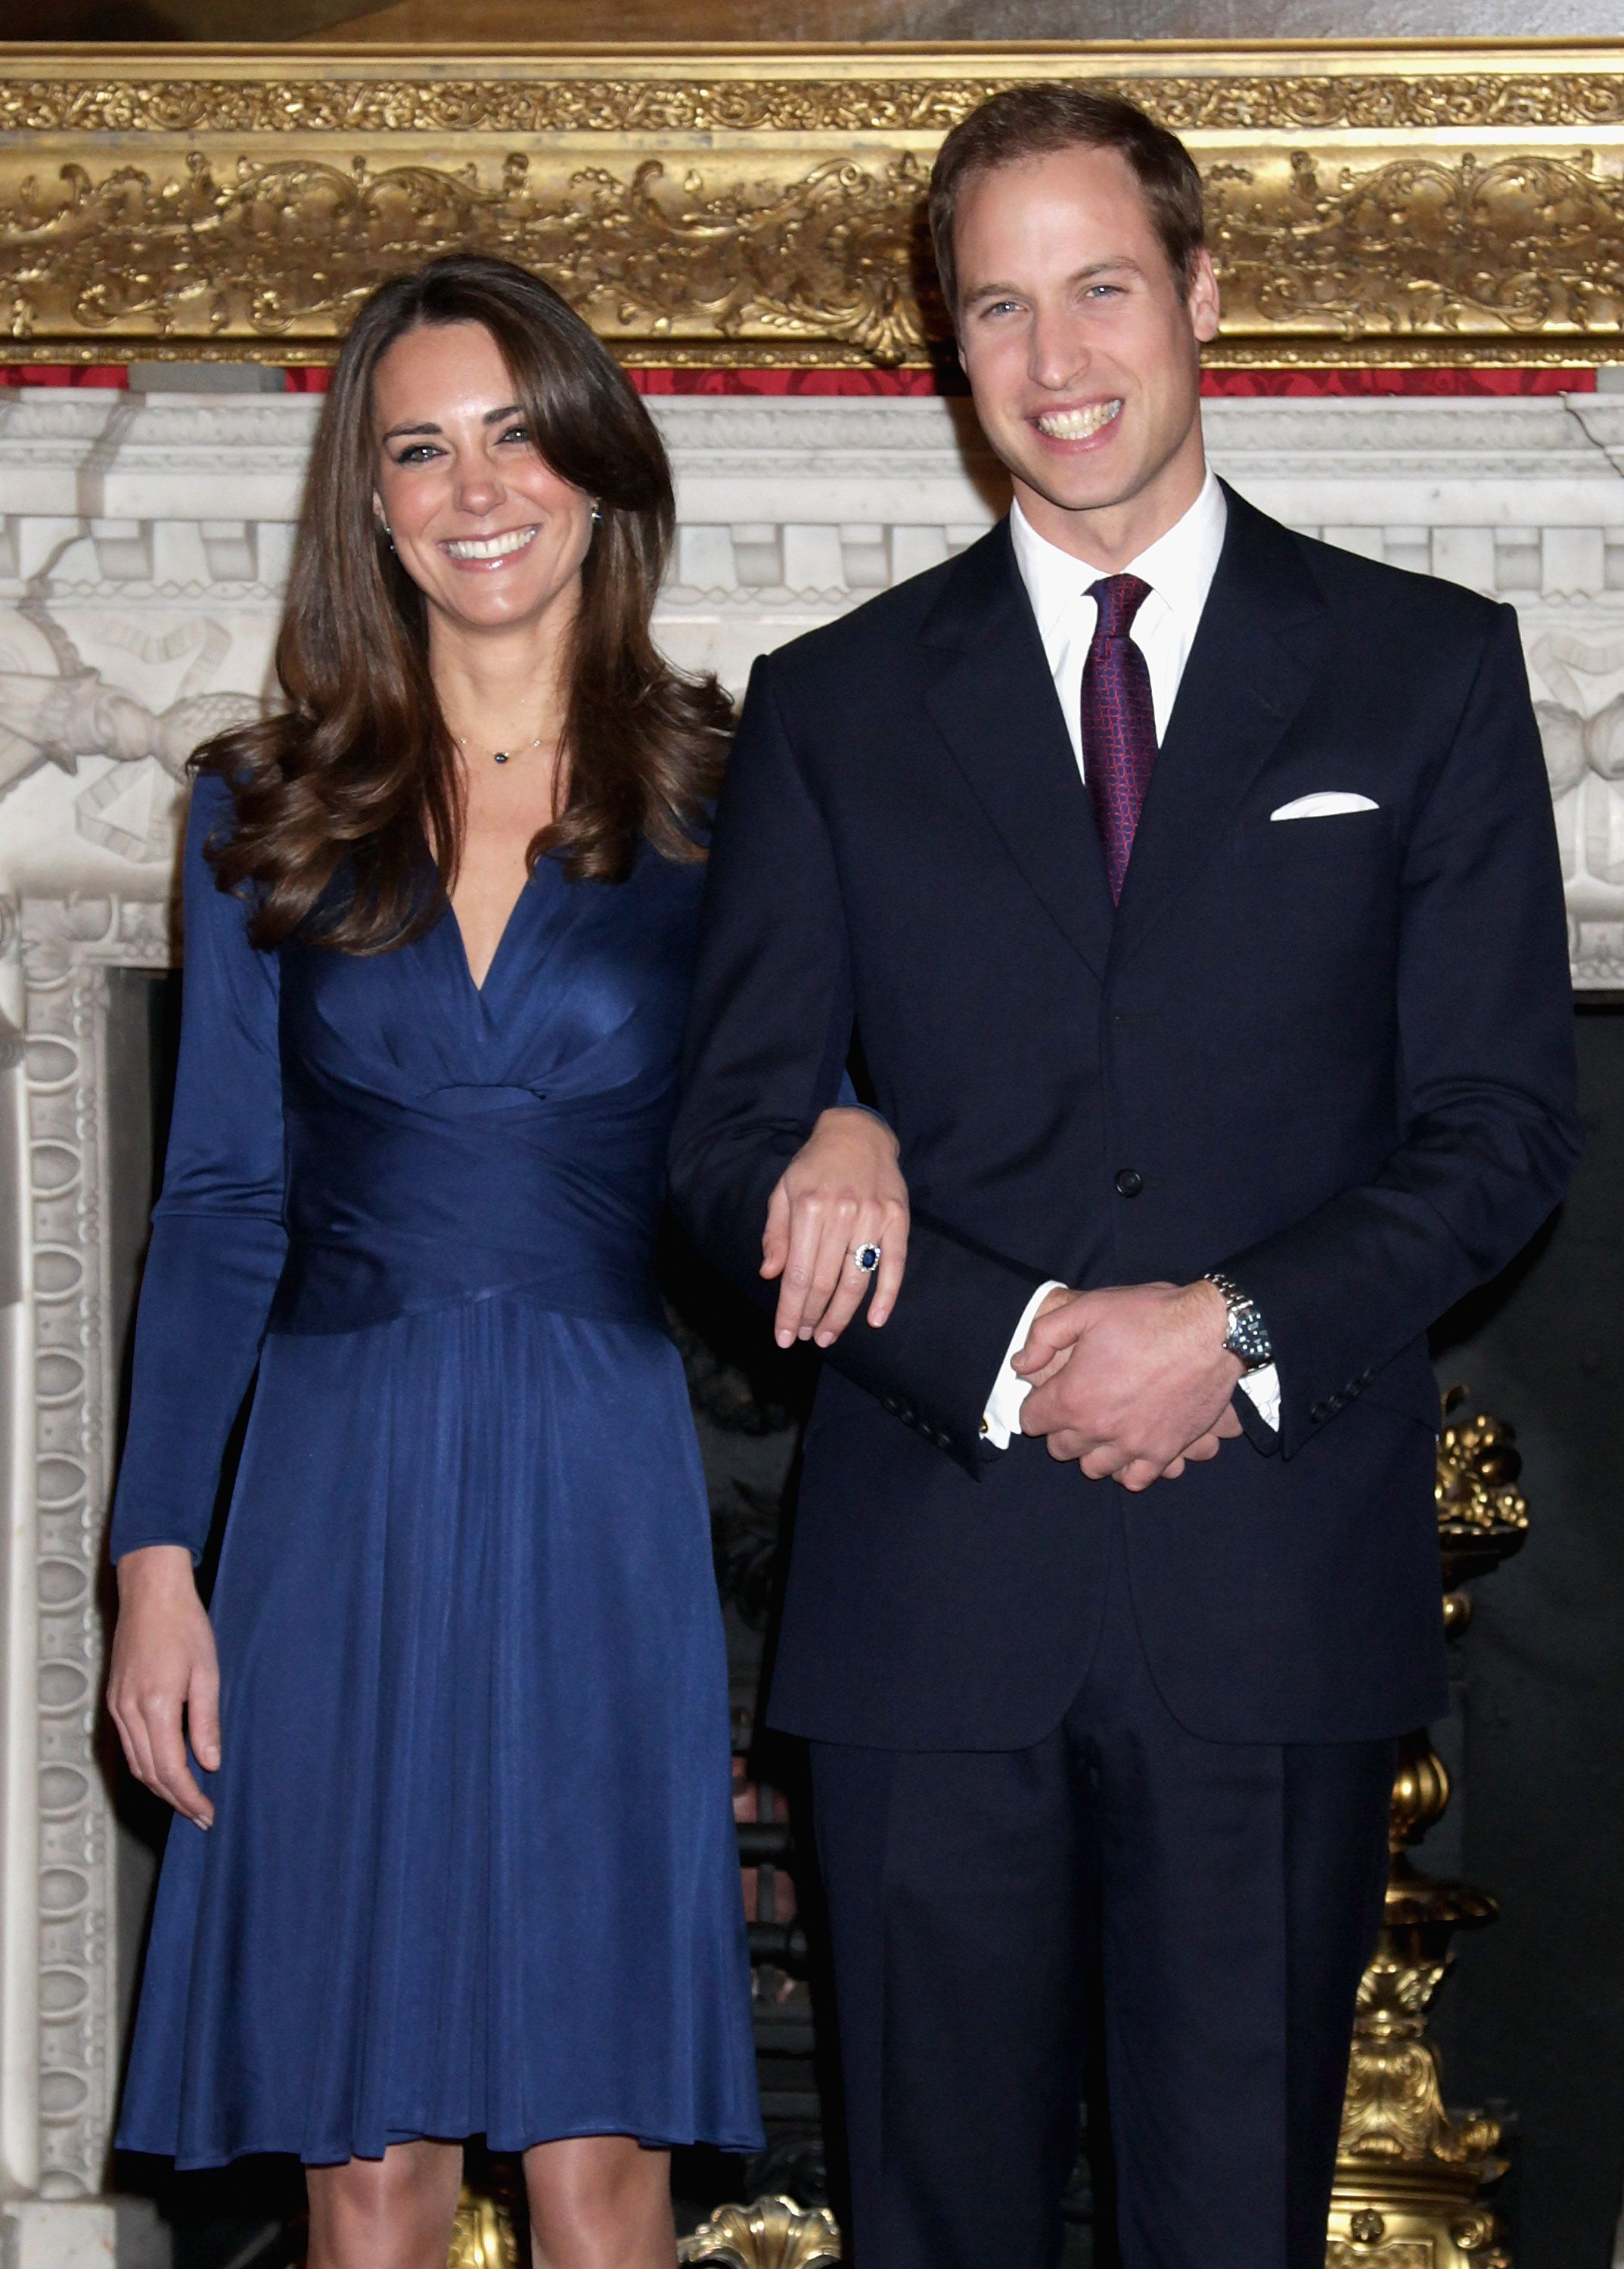 kate middleton s life in photos 48 best pictures of duchess of cambridge kate middleton s life in photos 48